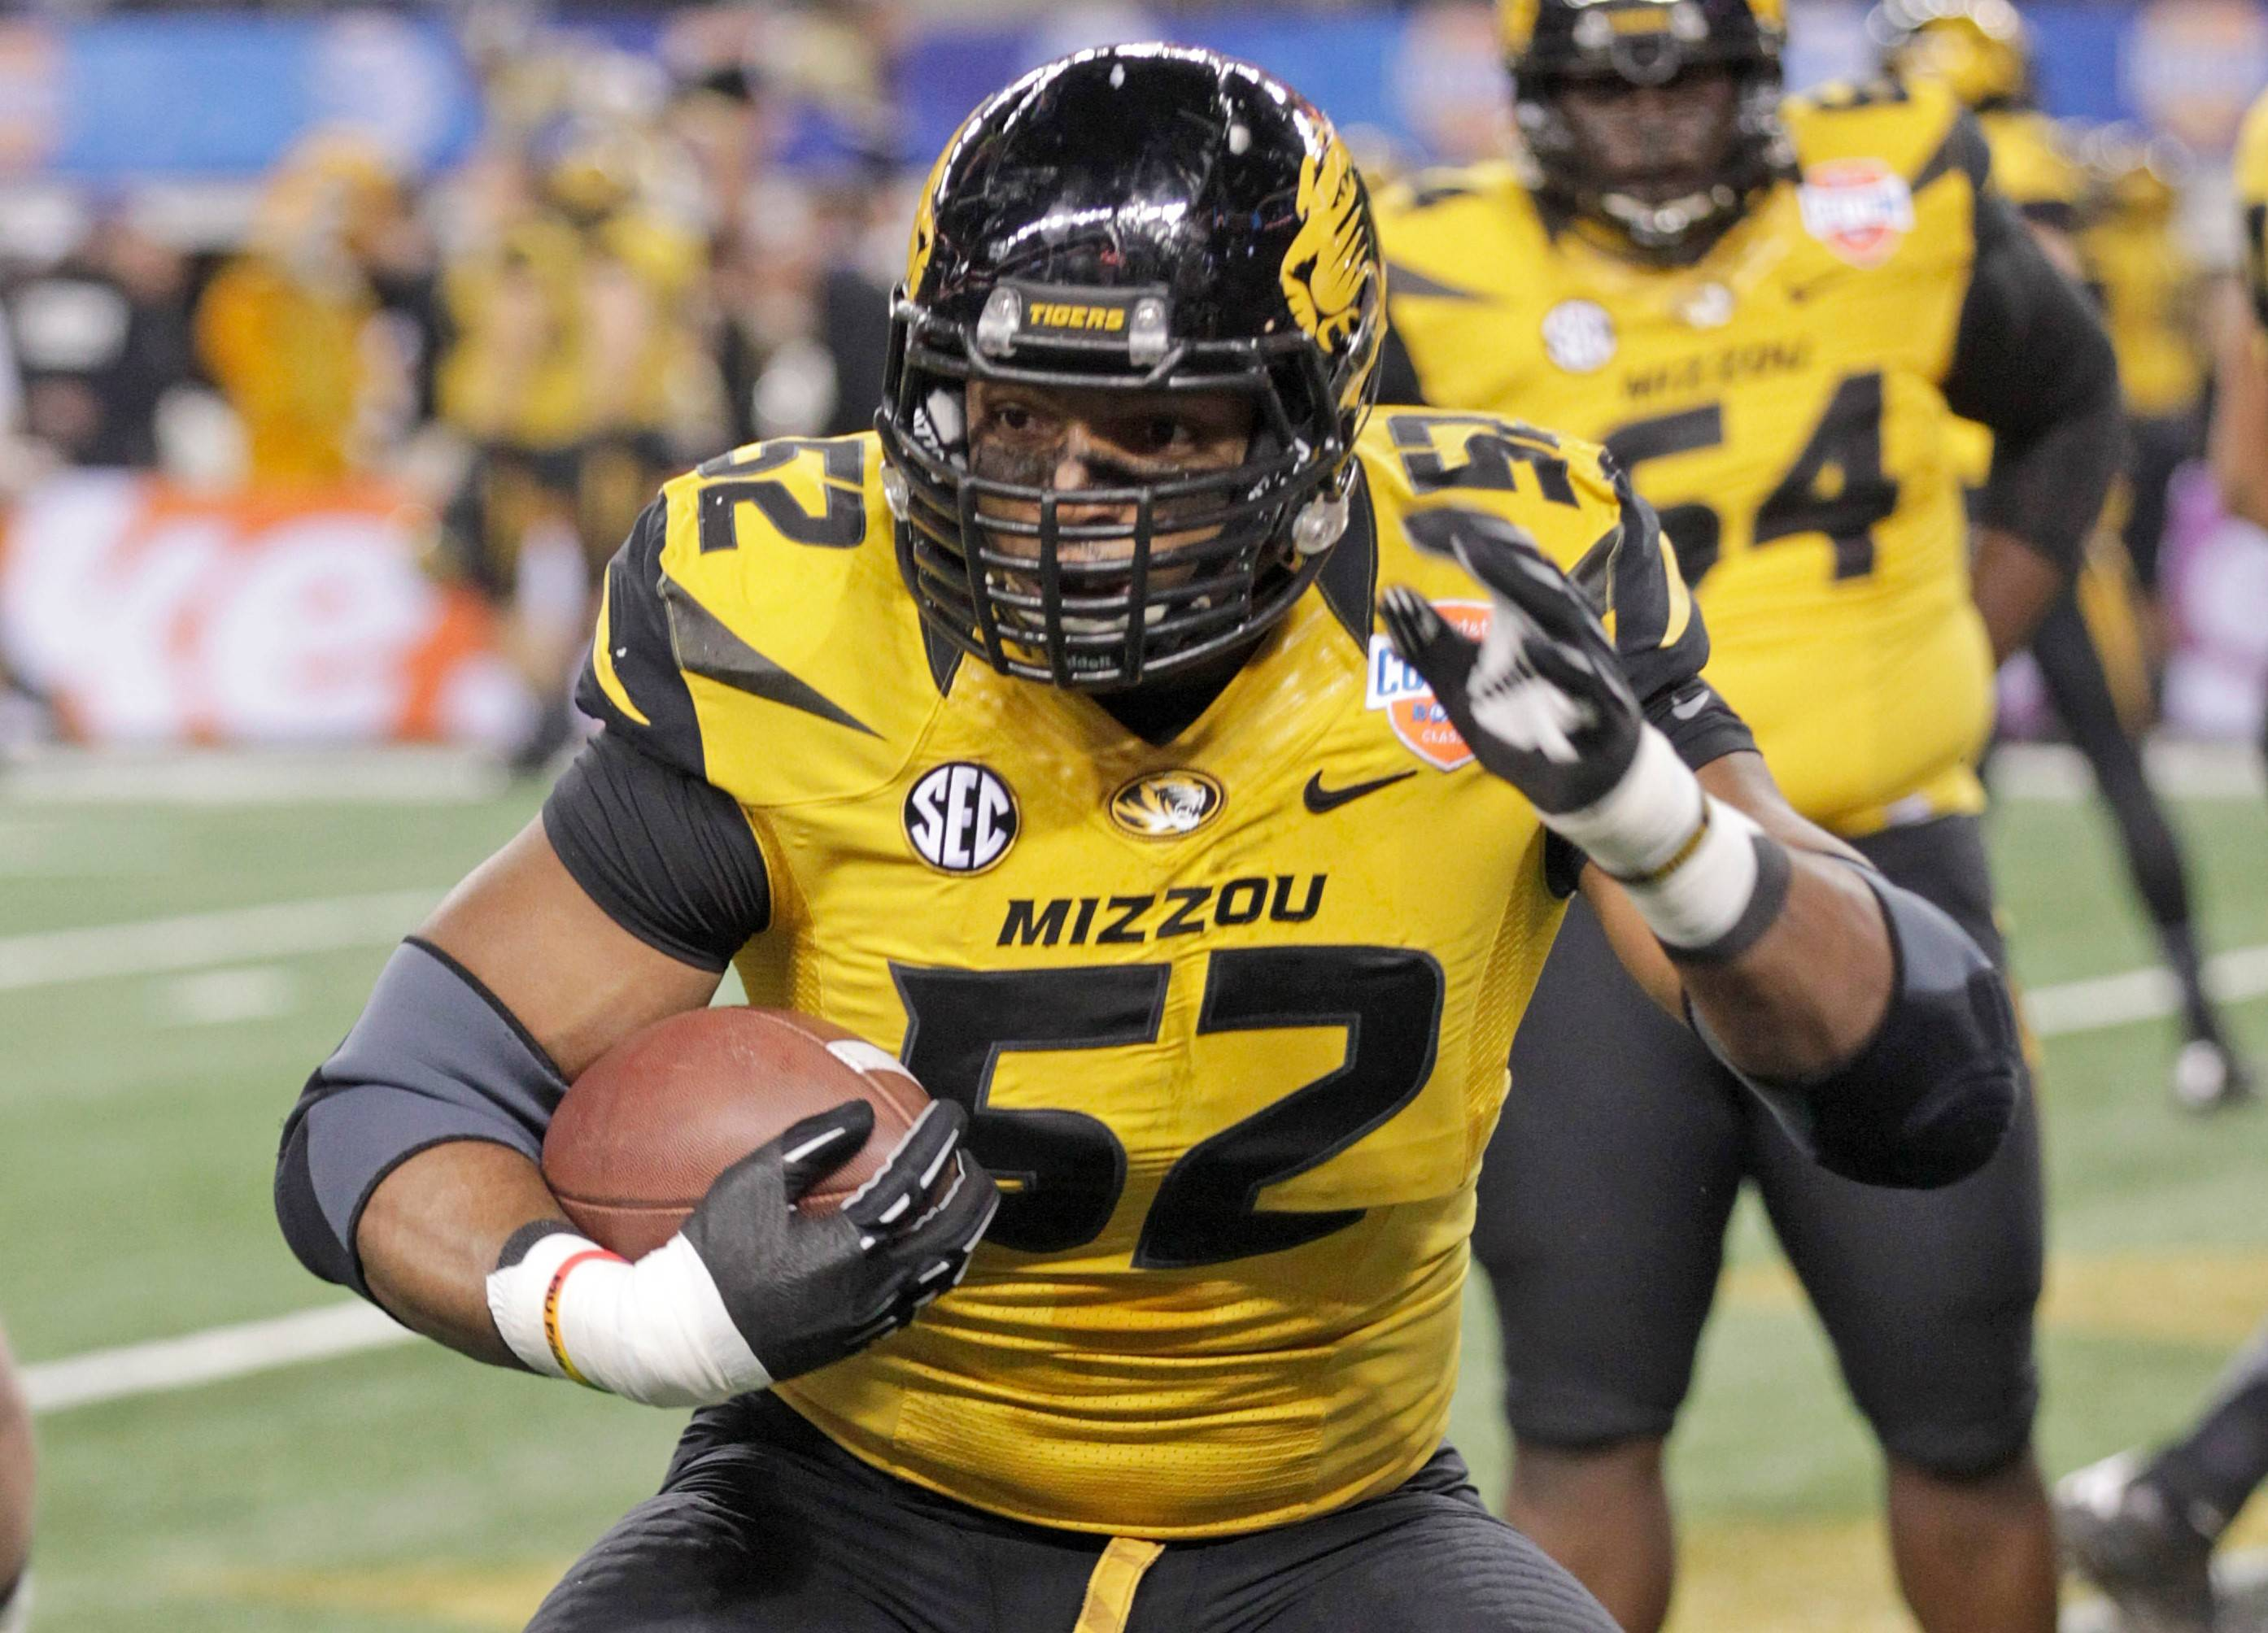 Michael Sam gets a chance to show he belongs on an NFL roster when he participates in the scouting combine in Indianapolis this week.